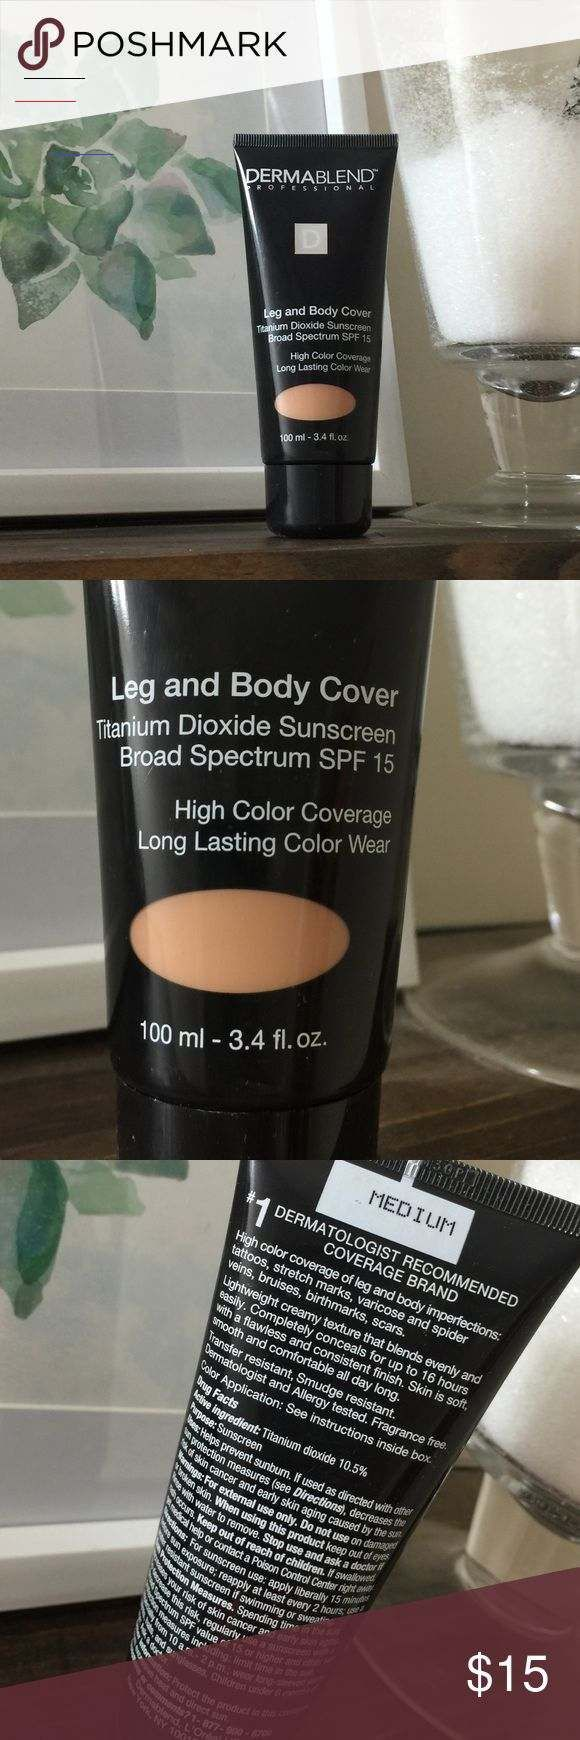 Dermablend Makeup Leg & Body Cover Medium Dermablend Leg